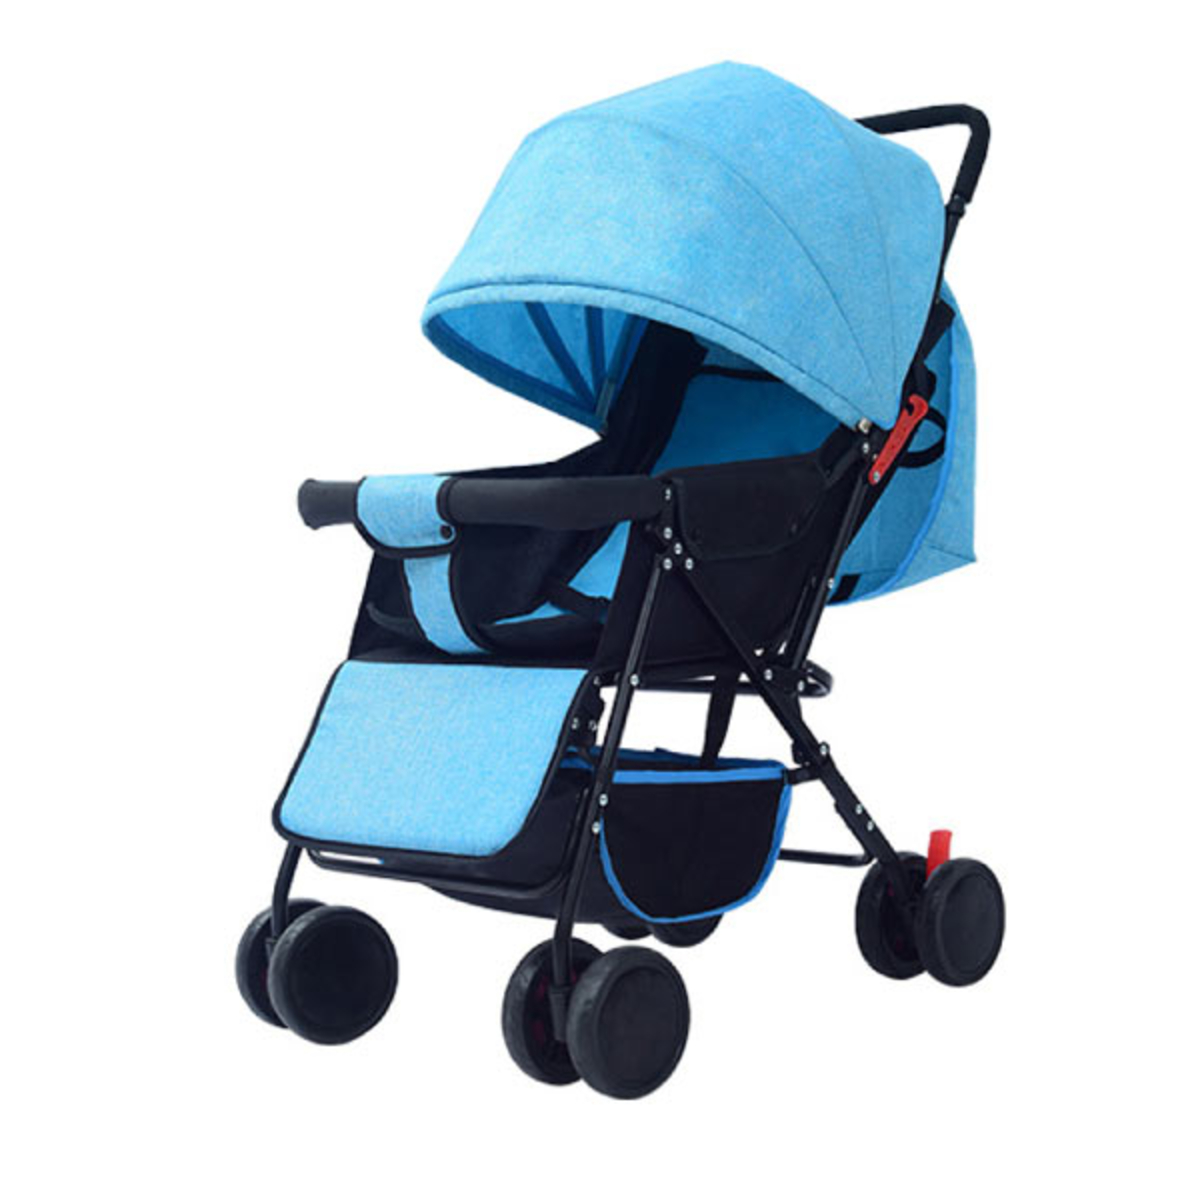 Baby Stroller Lightweight Folding Carrier 8 Wheels Suspension Canopy